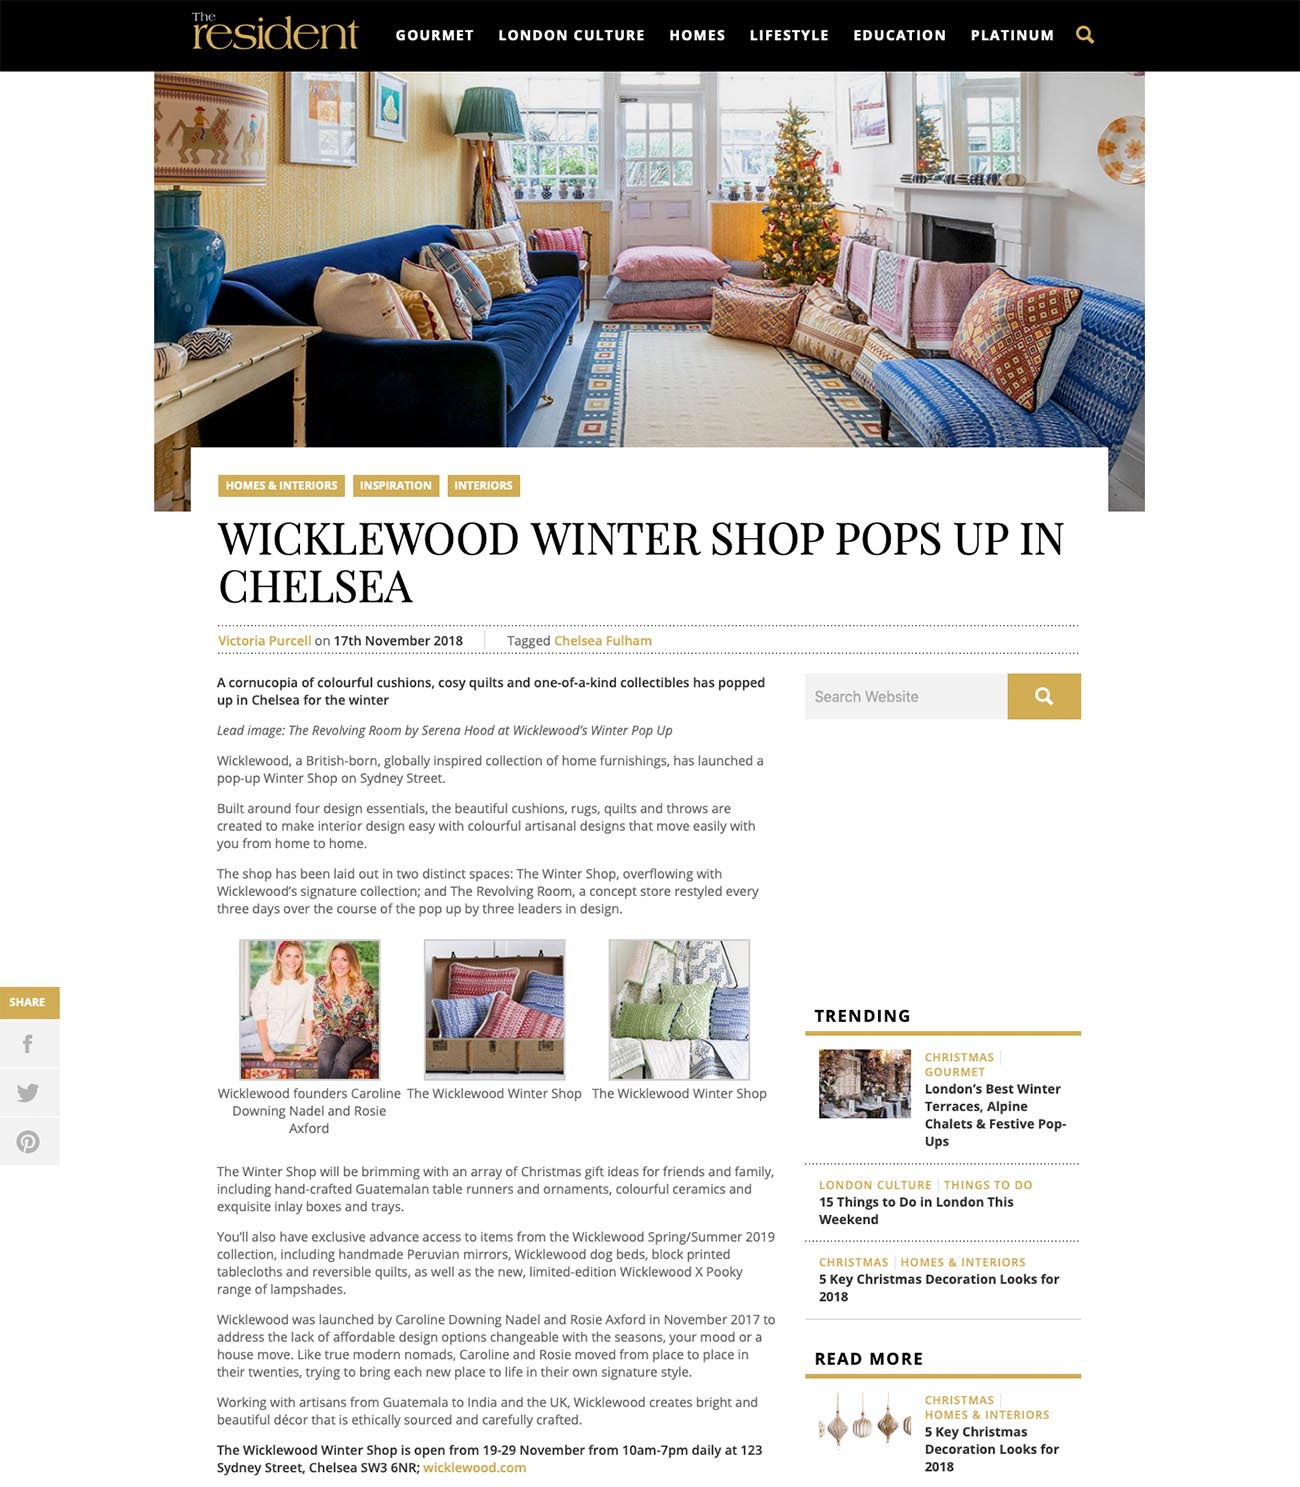 The Resident's online feature on Wicklewood's Christmas pop up shop - the Winter Shop & Revolving Room.